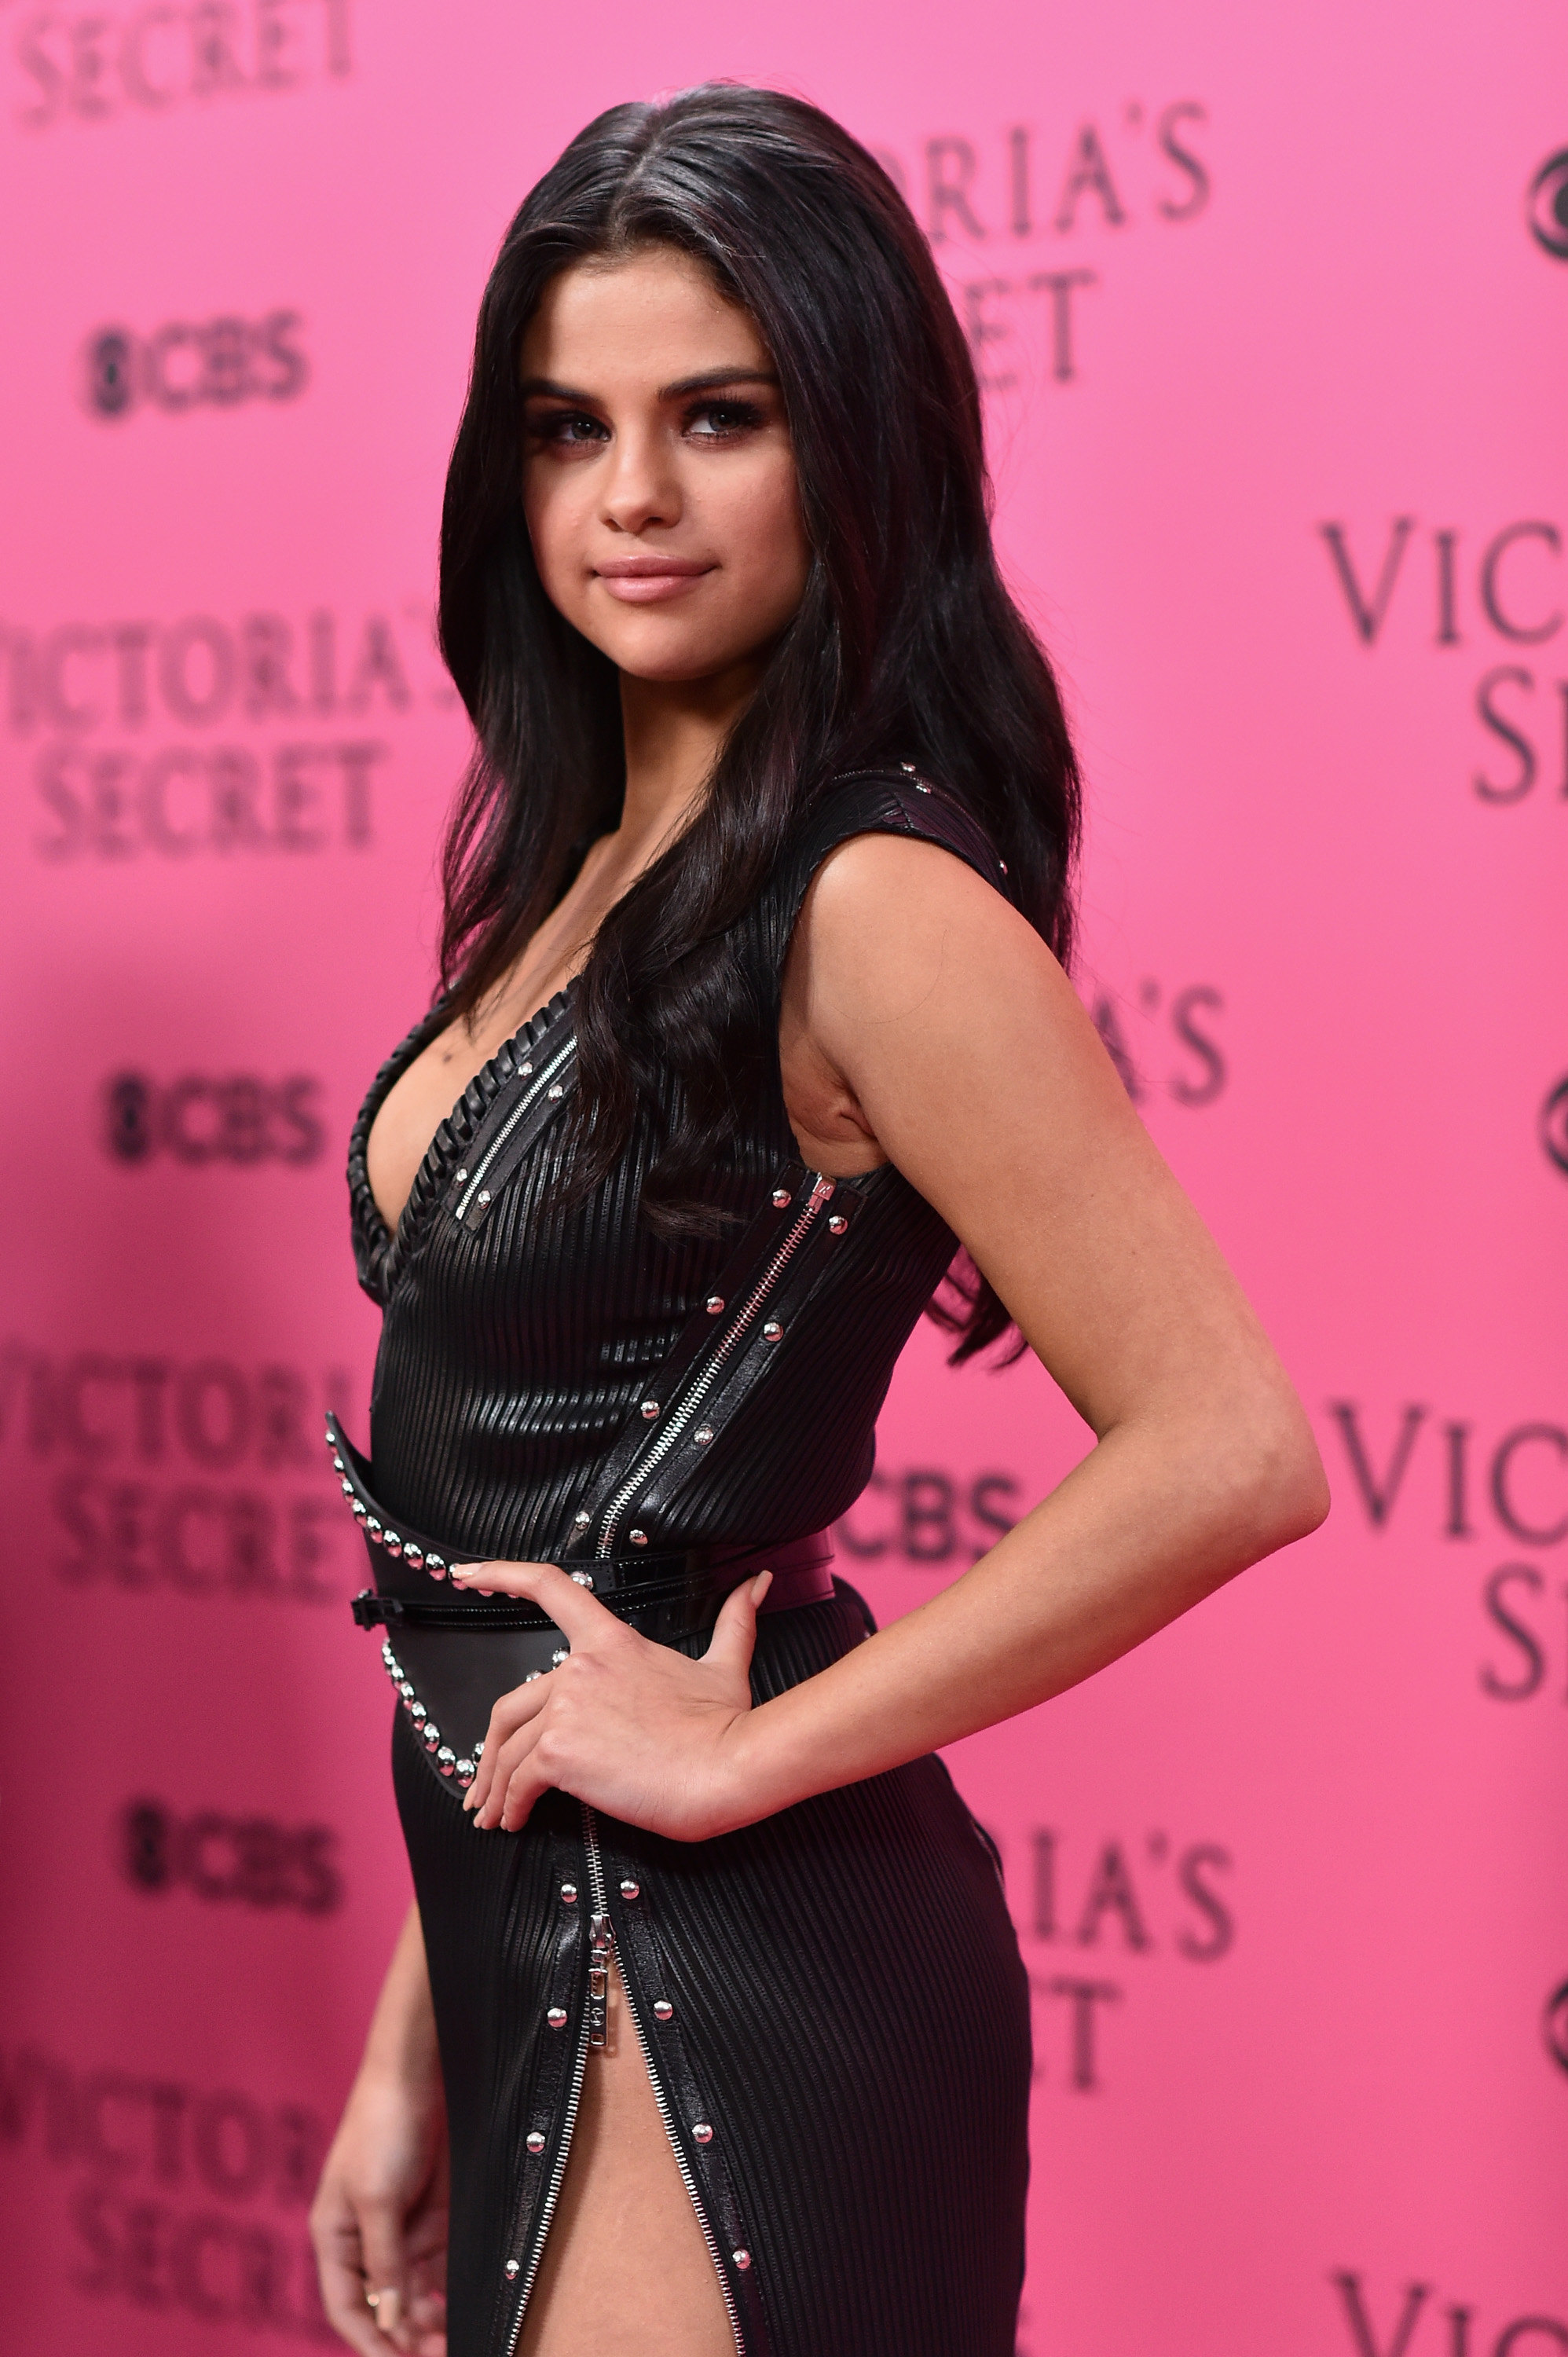 "selena gomez set iii 3 500 hq-uhq ""2014-2015"", top celebrity pics dvd's"